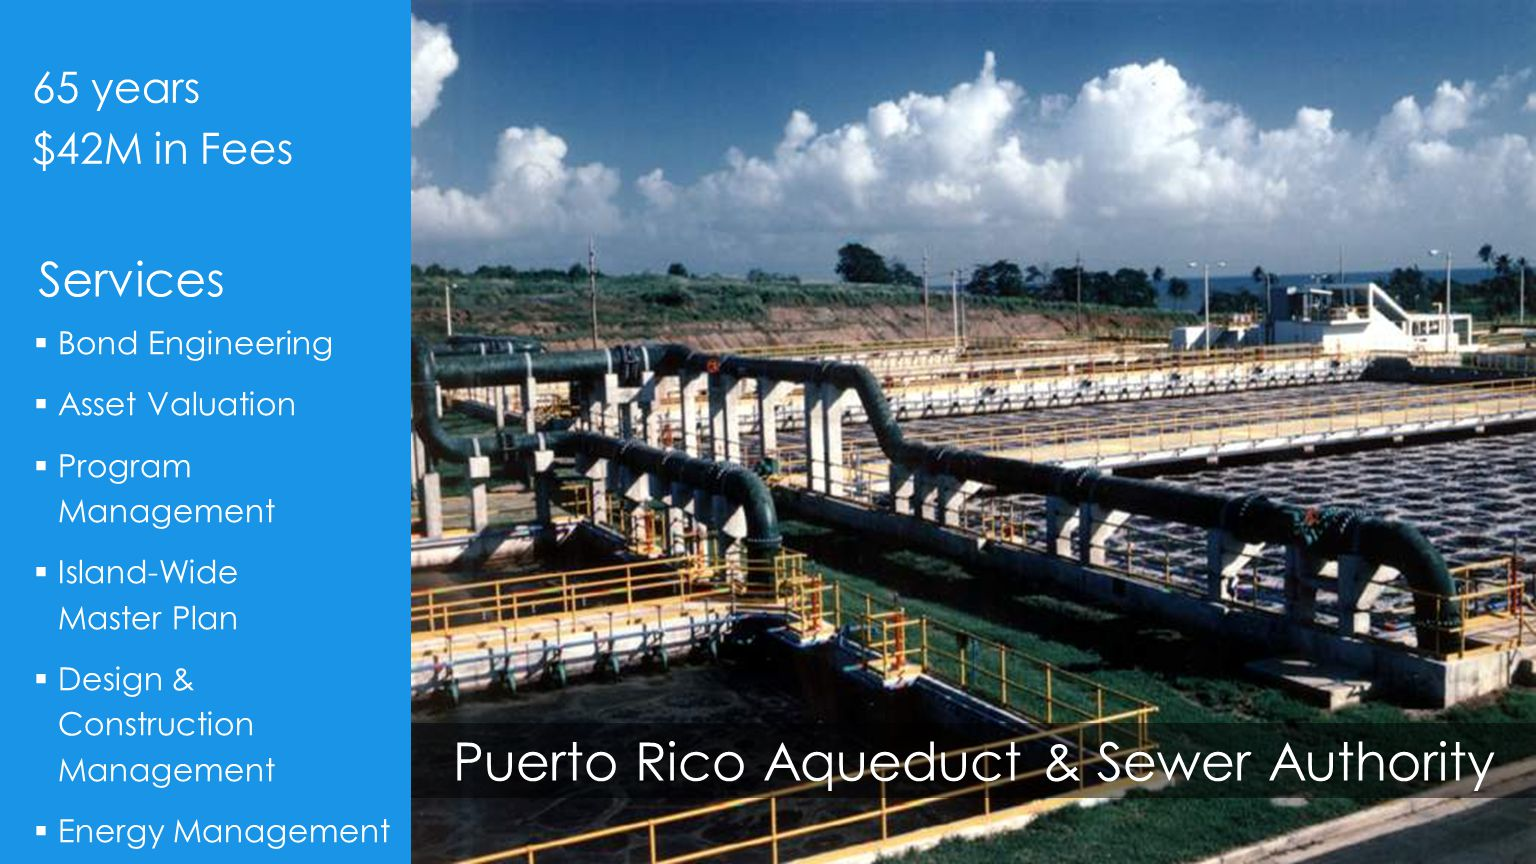 Puerto Rico Aqueduct & Sewer Authority  Bond Engineering  Asset Valuation  Program Management  Island-Wide Master Plan  Design & Construction Management  Energy Management 65 years $42M in Fees Services